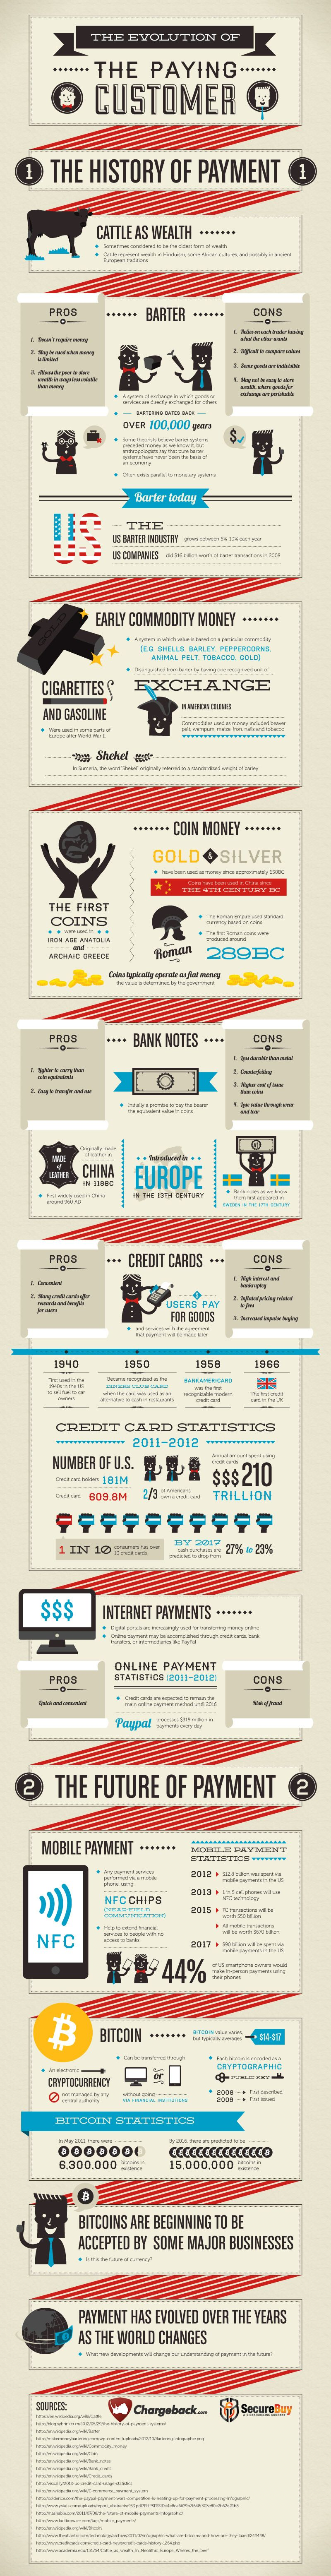 Past, Present and Future of Customer Payments (Infographic)